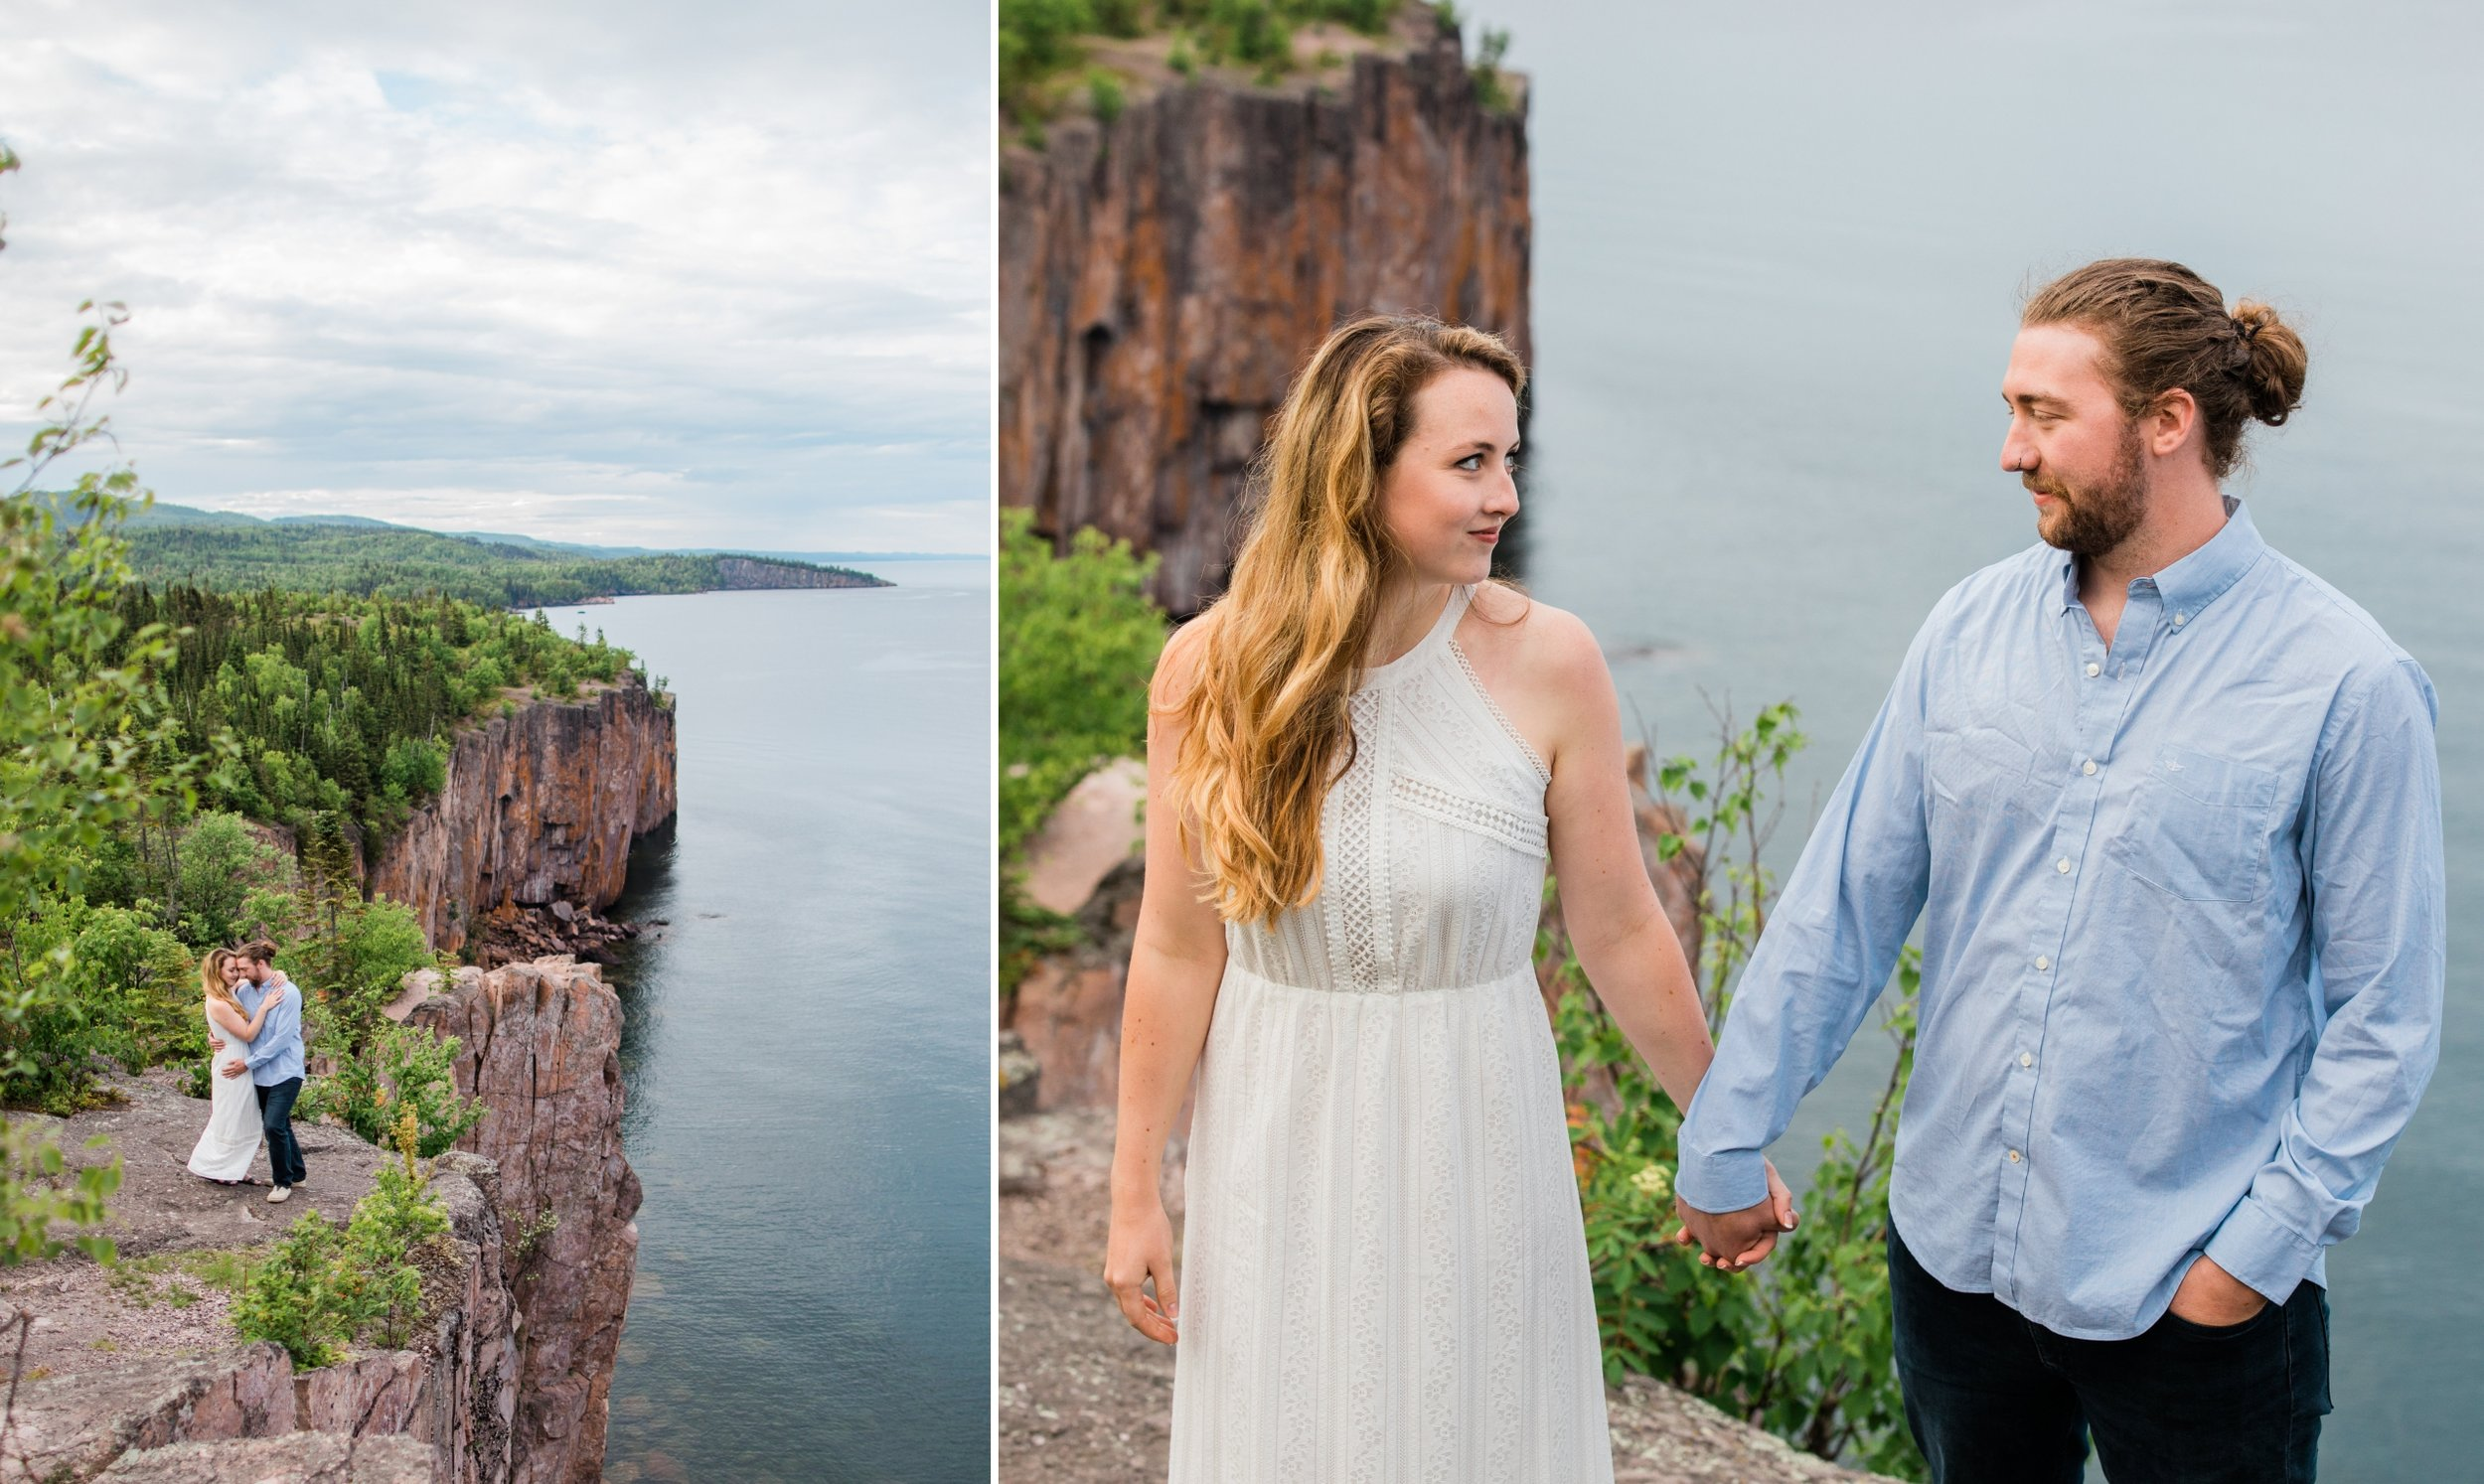 Palisade Head Engagement Session